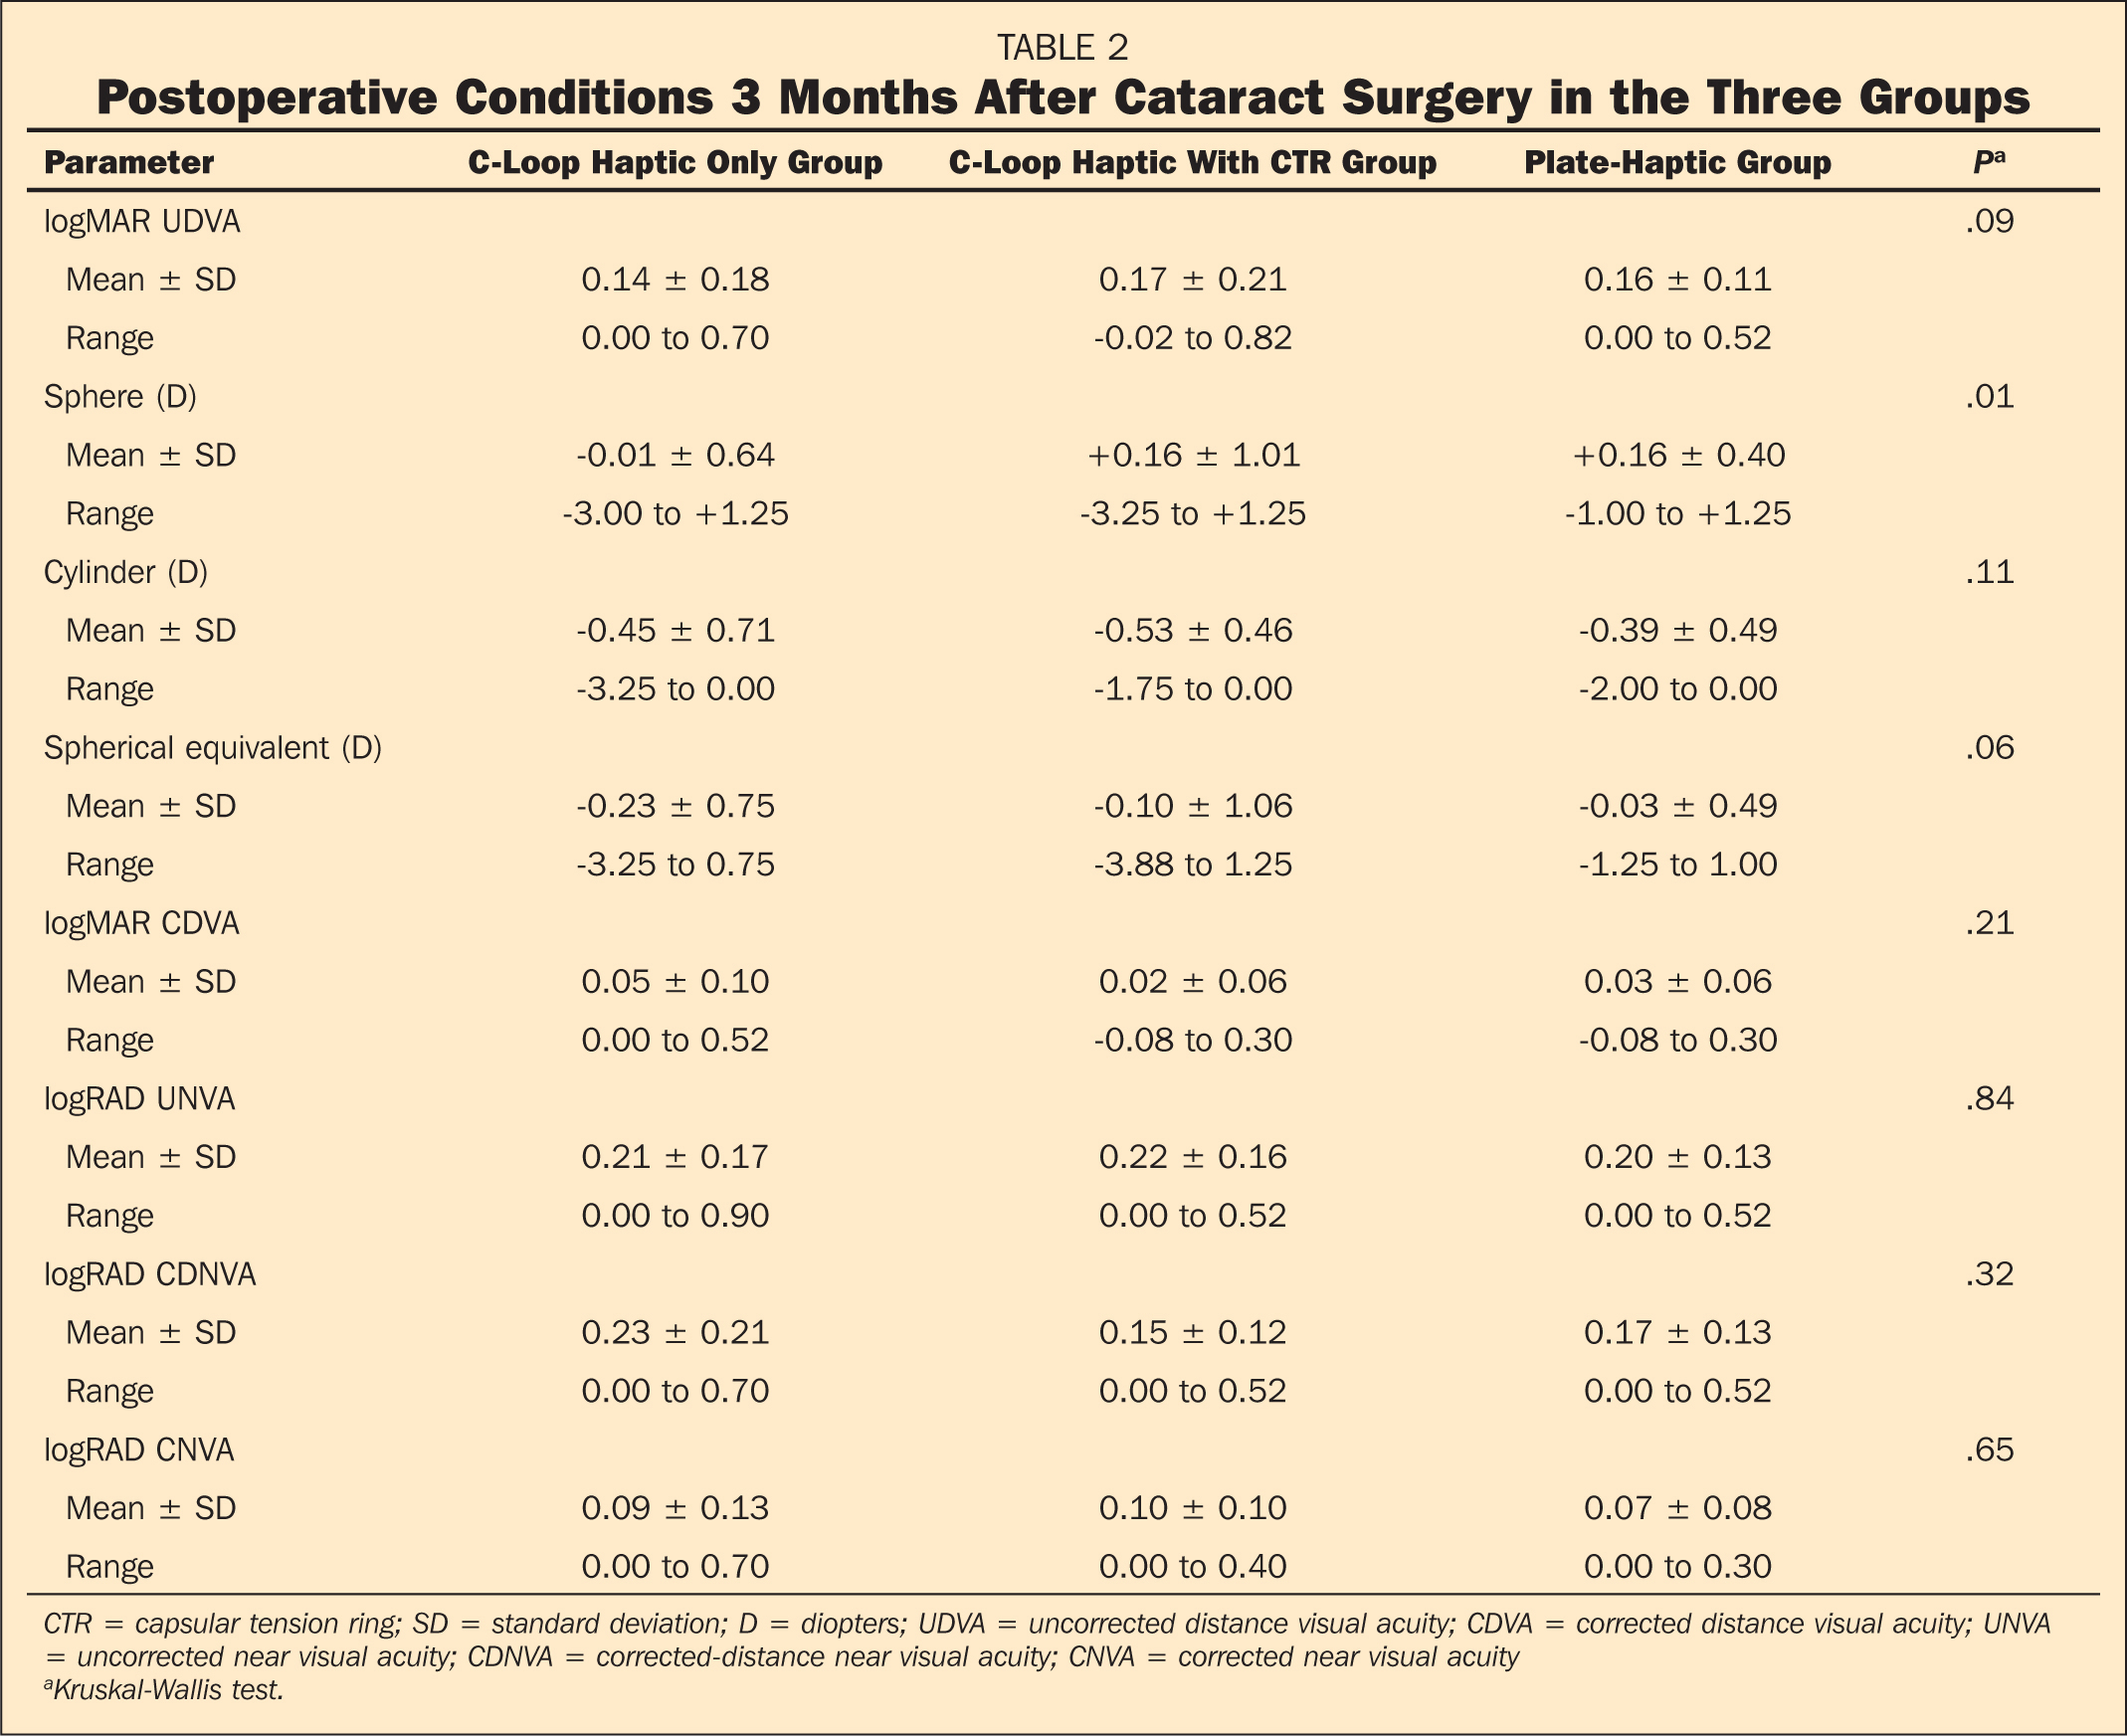 Postoperative Conditions 3 Months After Cataract Surgery in the Three Groups